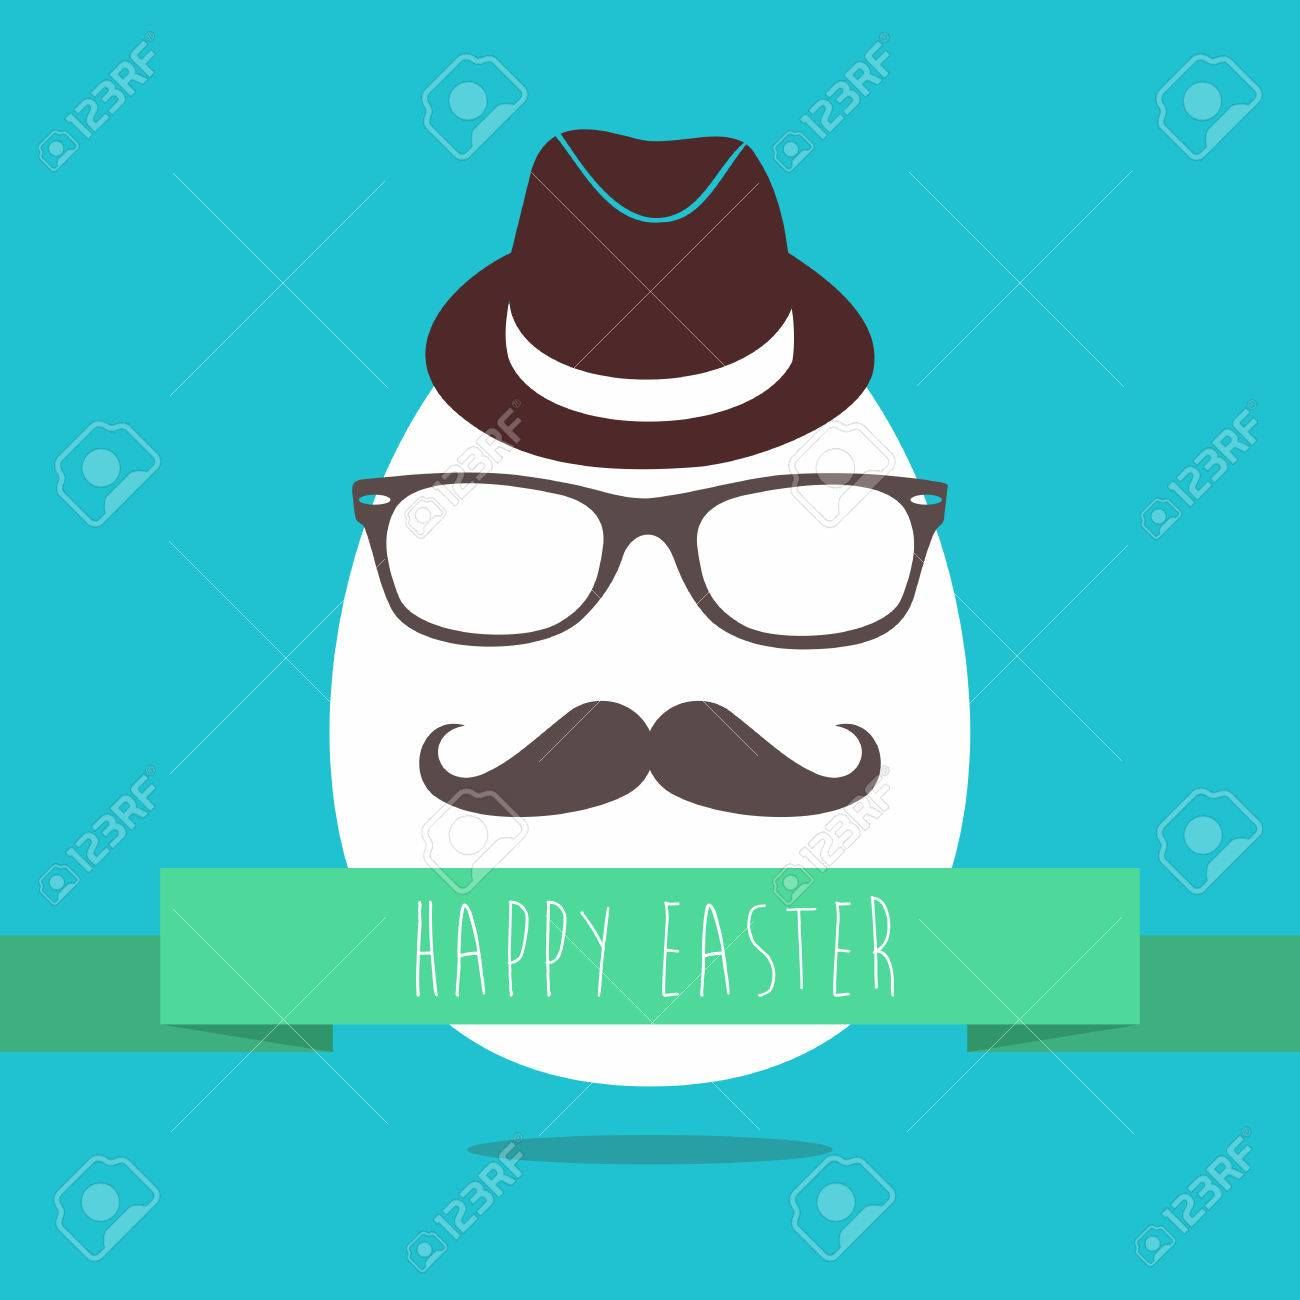 Funny easter greeting card design of hipster egg with glasses funny easter greeting card design of hipster egg with glasses and mustache for holiday celebration kristyandbryce Choice Image